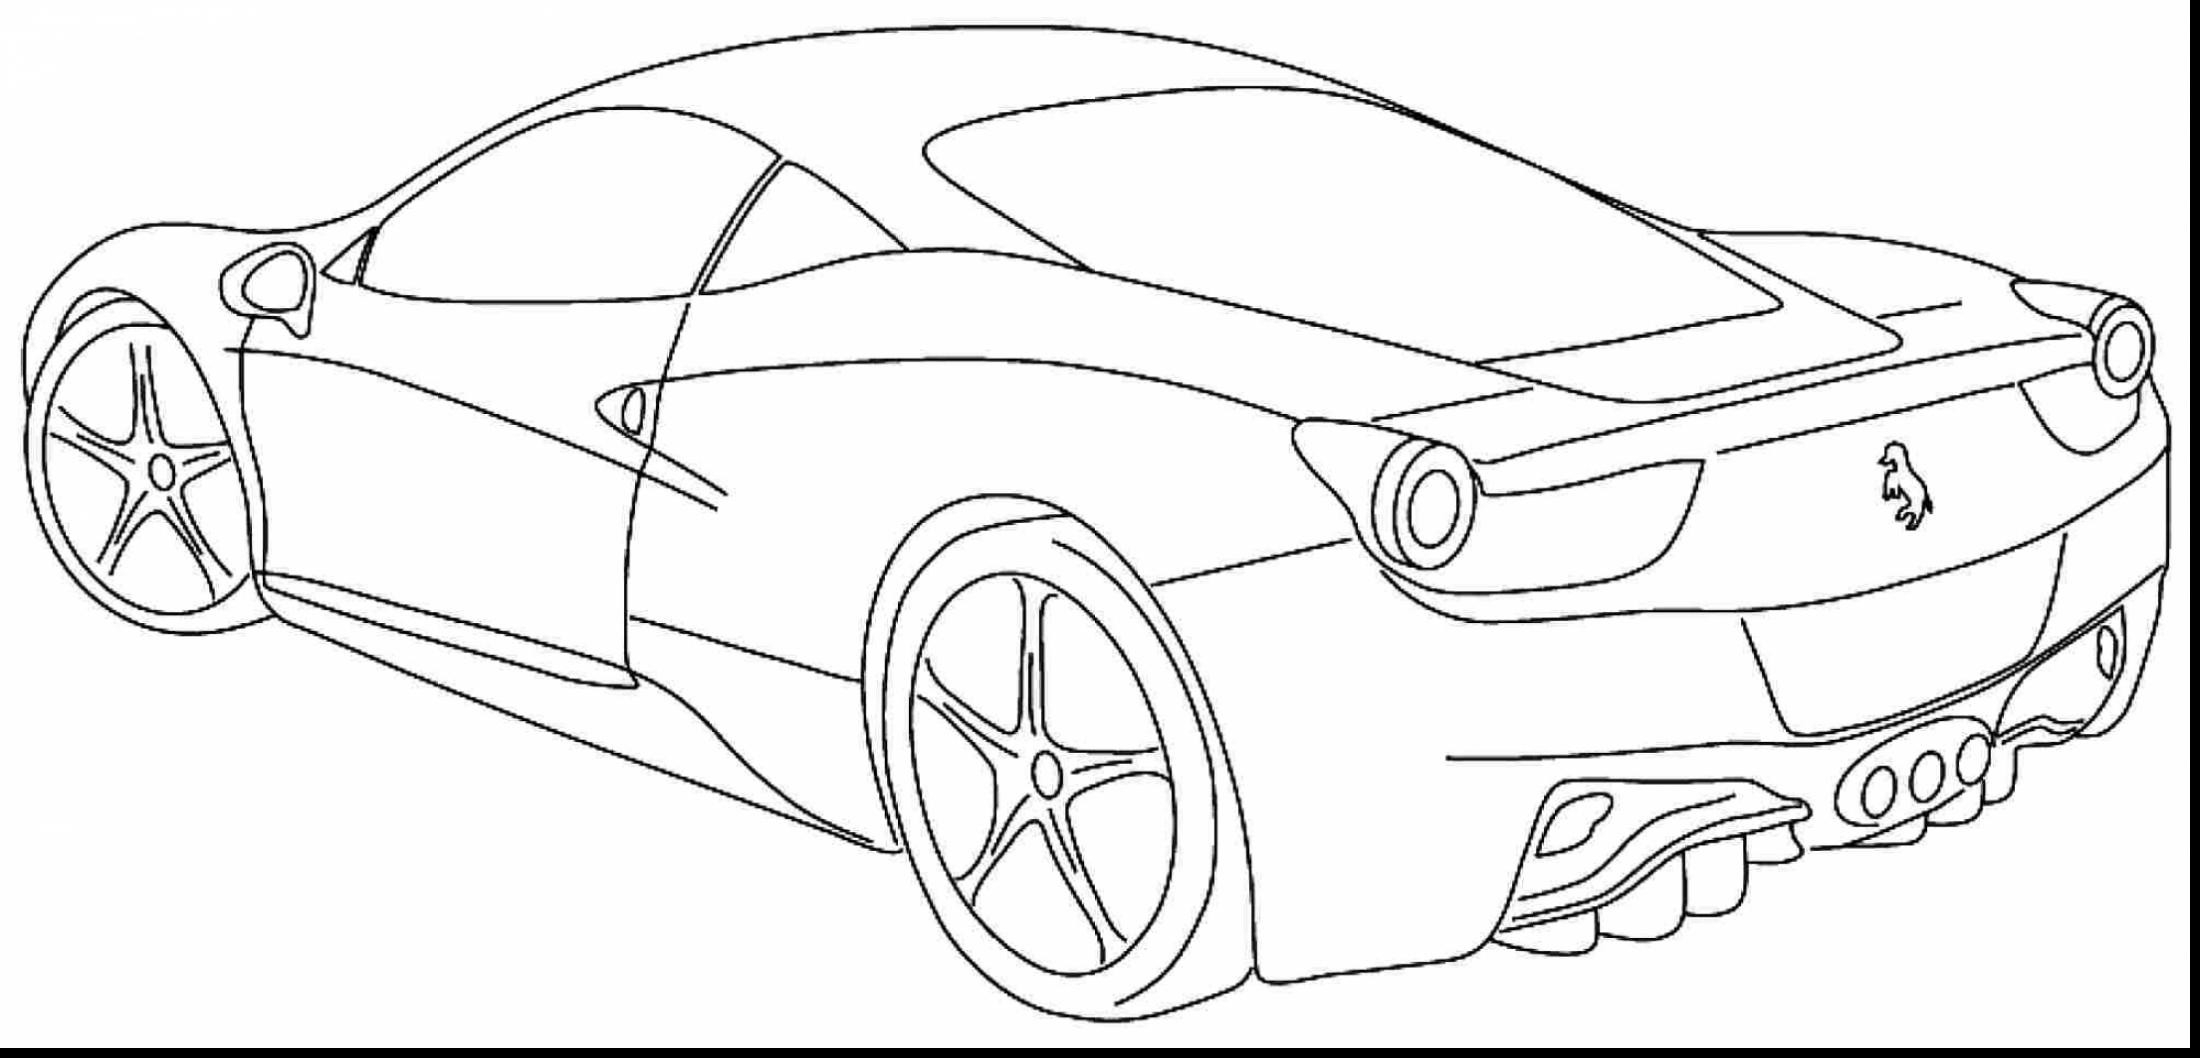 Sports Car Coloring Pages Supercar Coloring Pages At Getdrawings Free For Personal Use